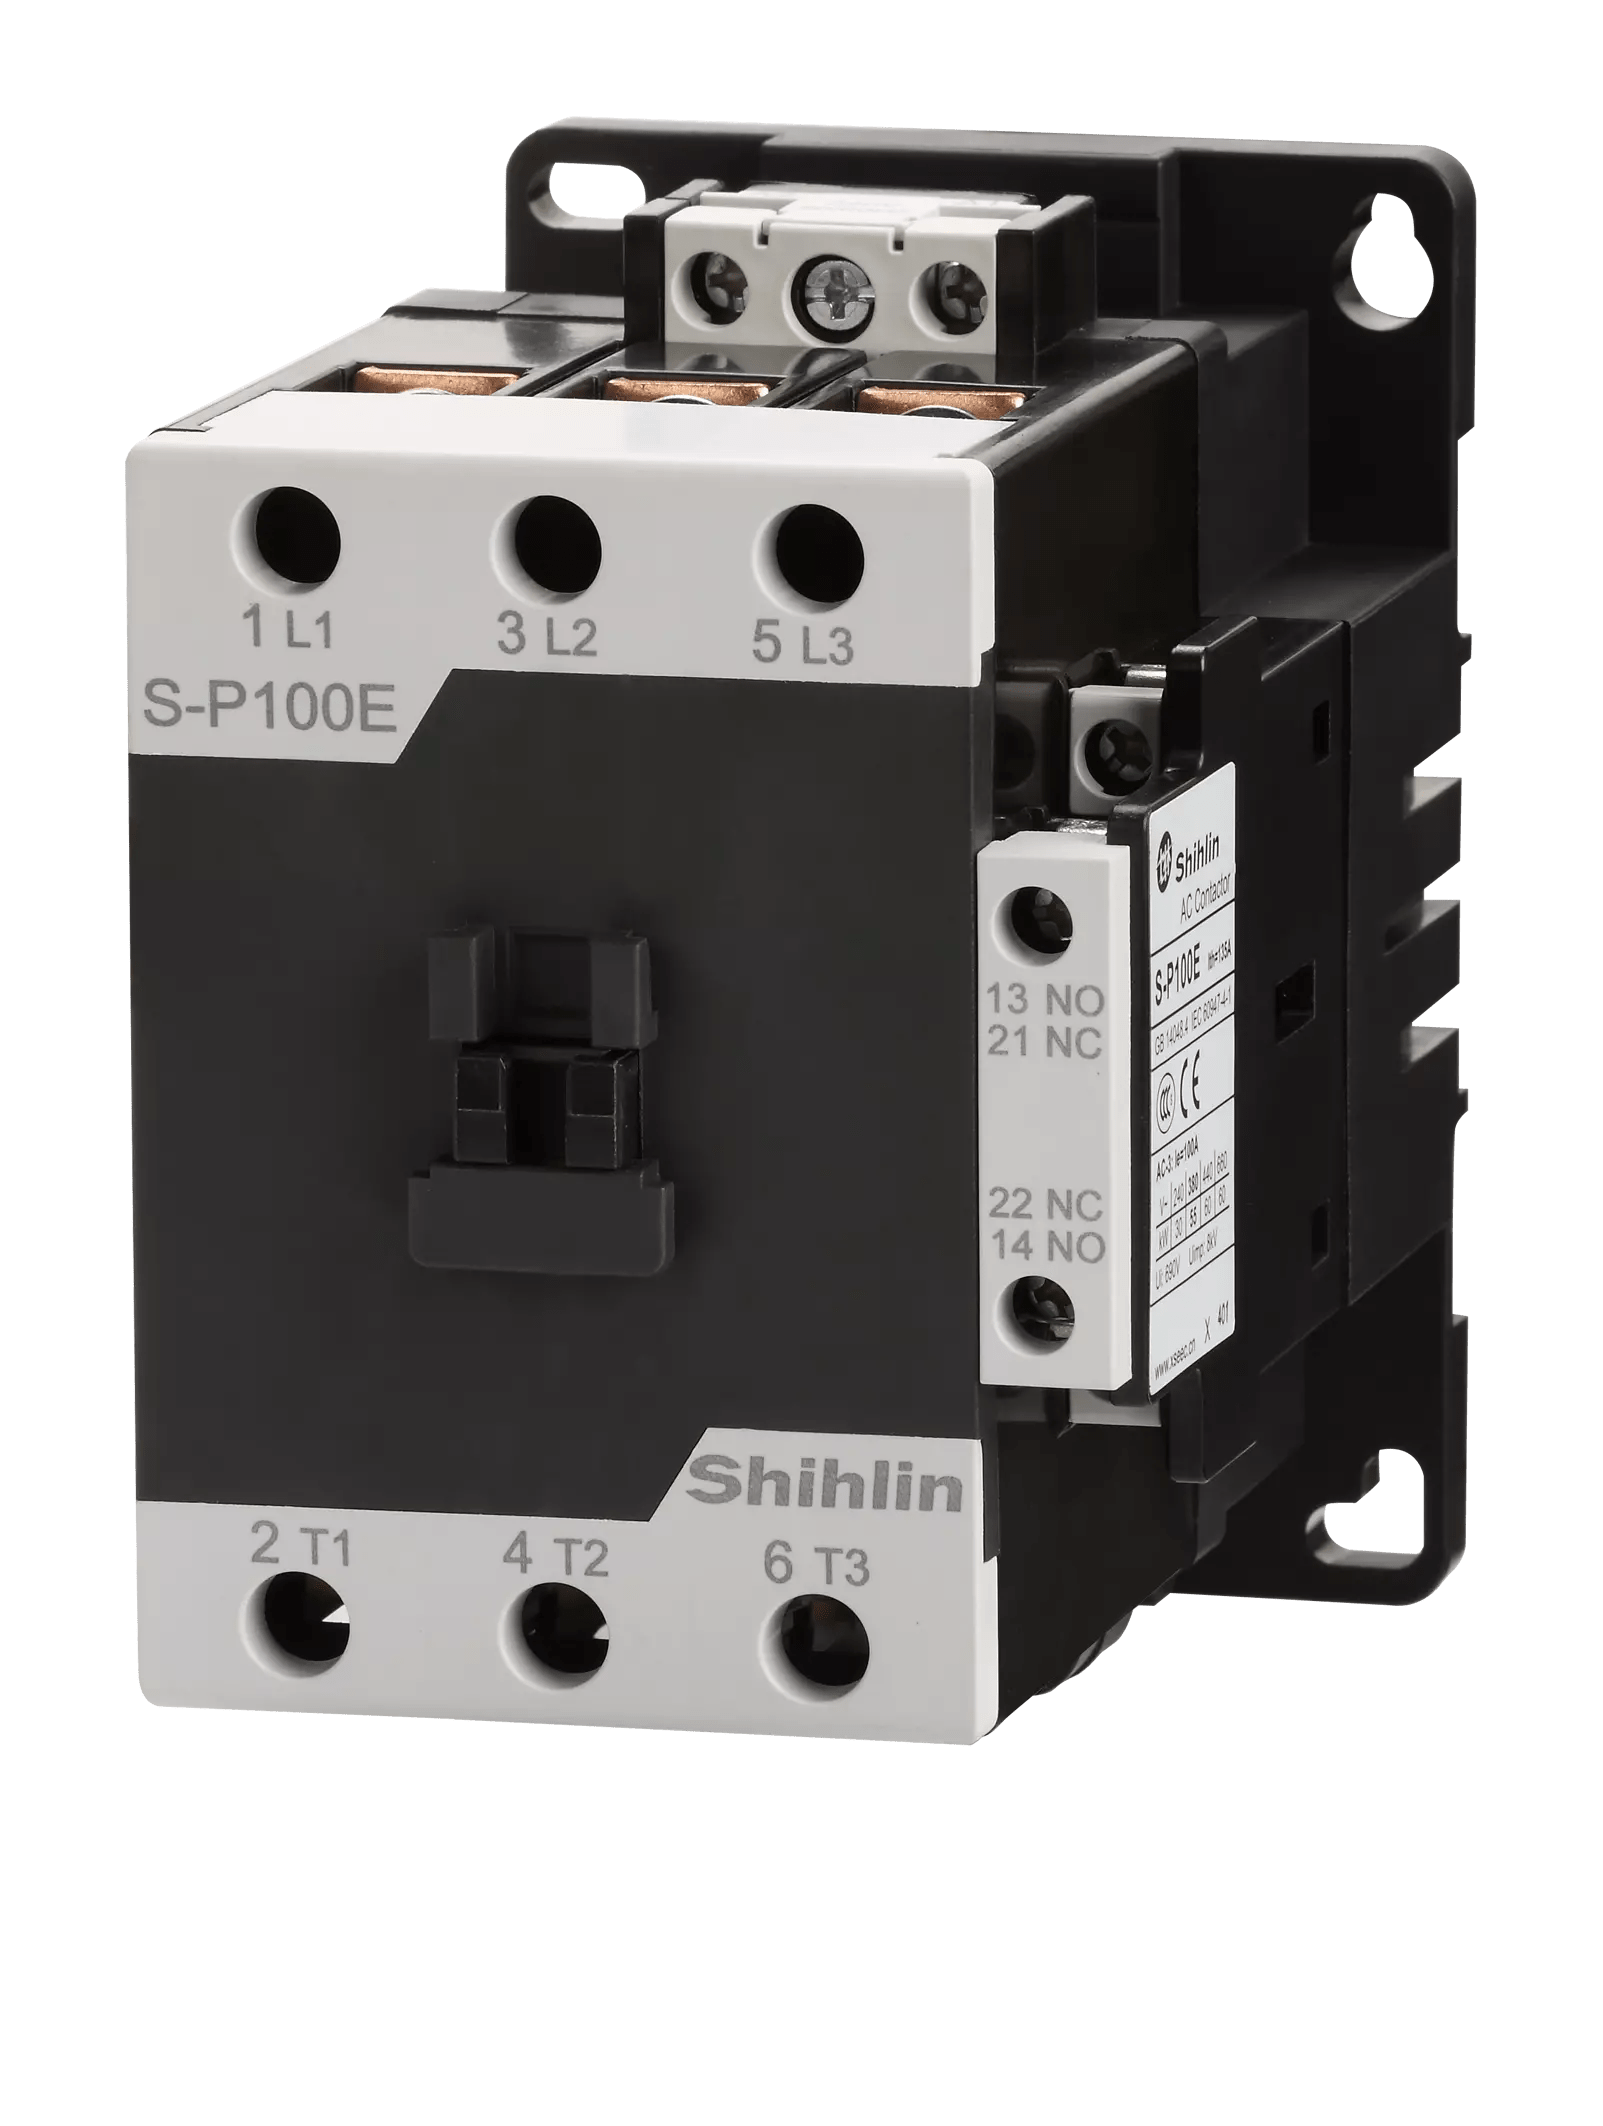 shihlin electric magnetic contactor s p100e [ 1603 x 2126 Pixel ]